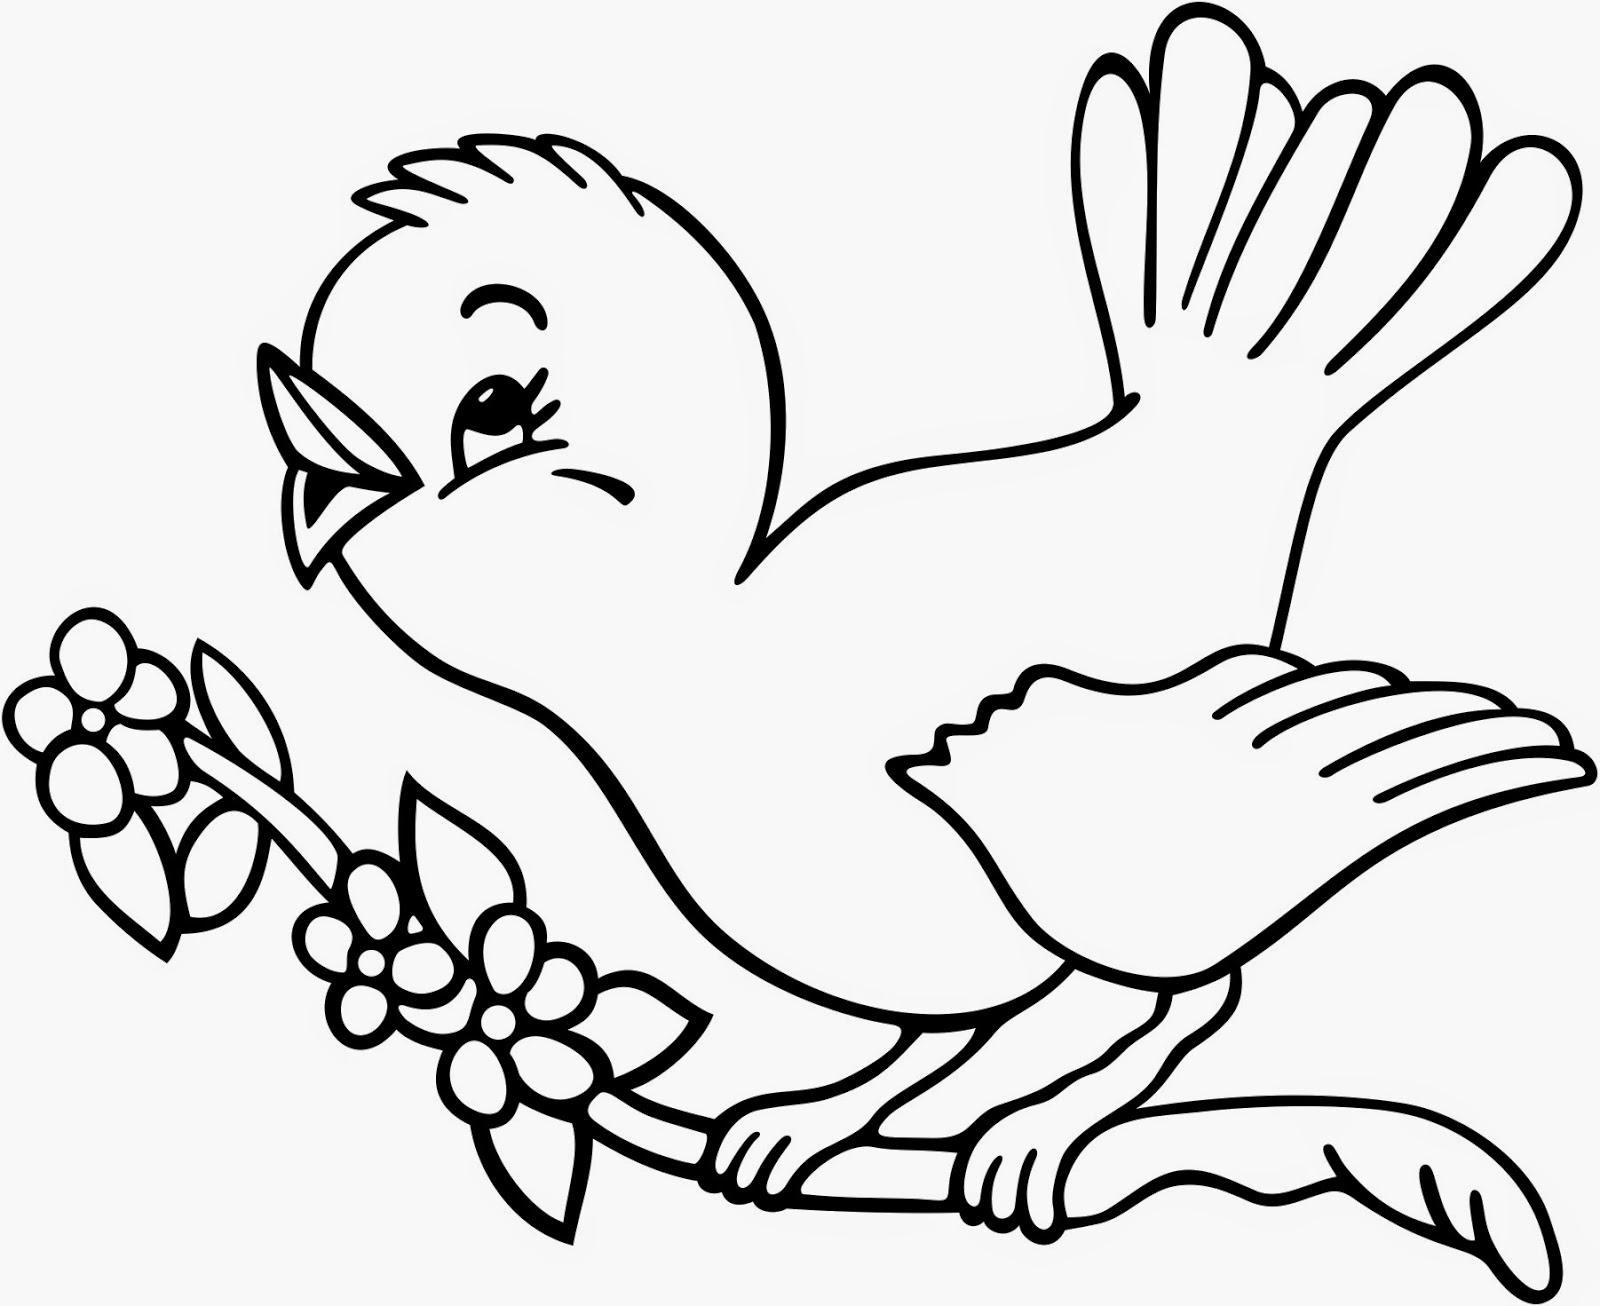 bird coloring pages uk - photo#28